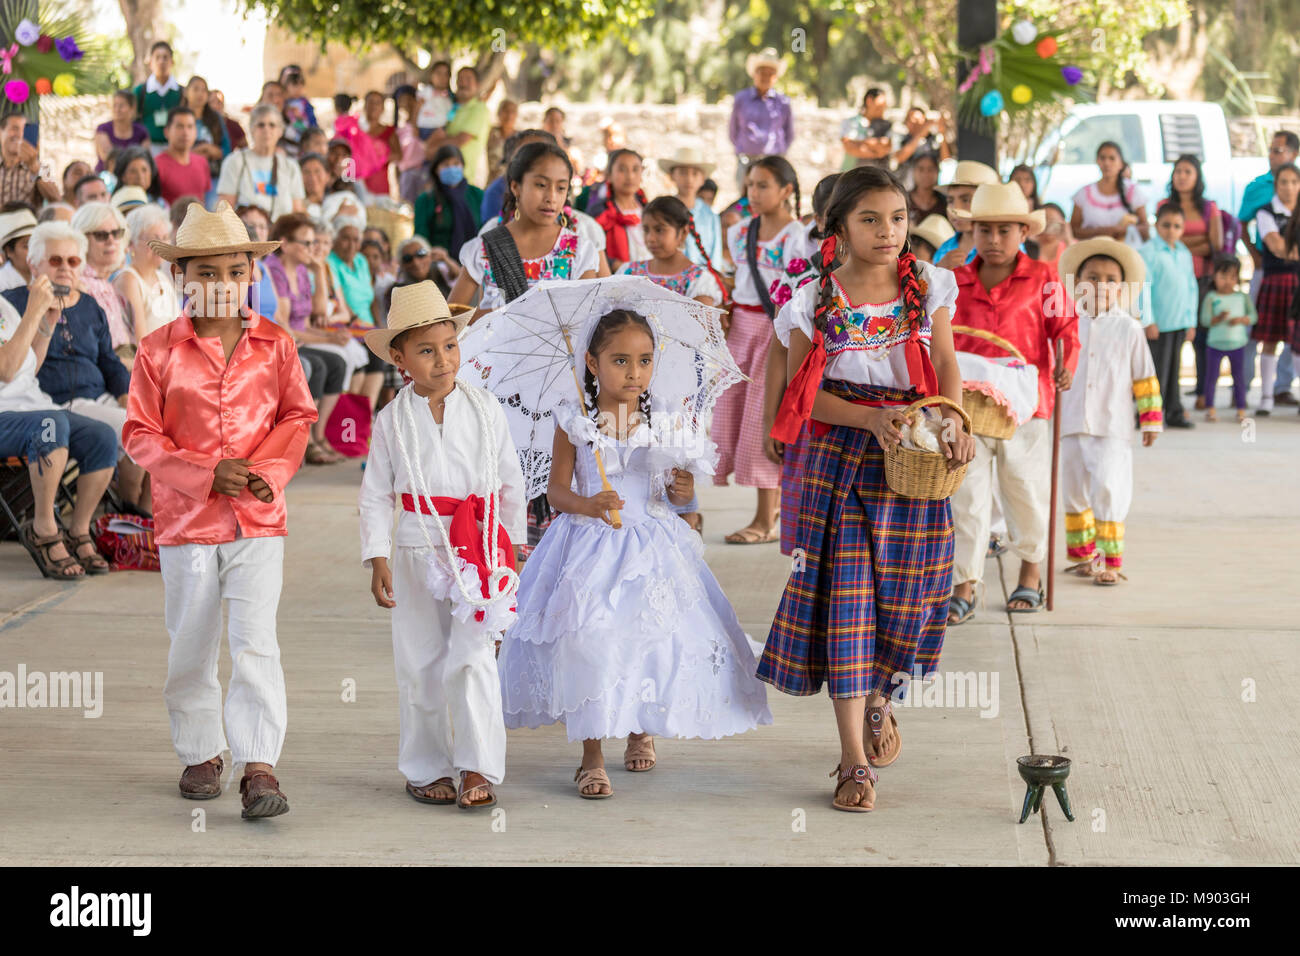 San Juan Teitipac, Oaxaca, Mexico - Children perform a pretend wedding during the town's Linguistic and Heritage - Stock Image